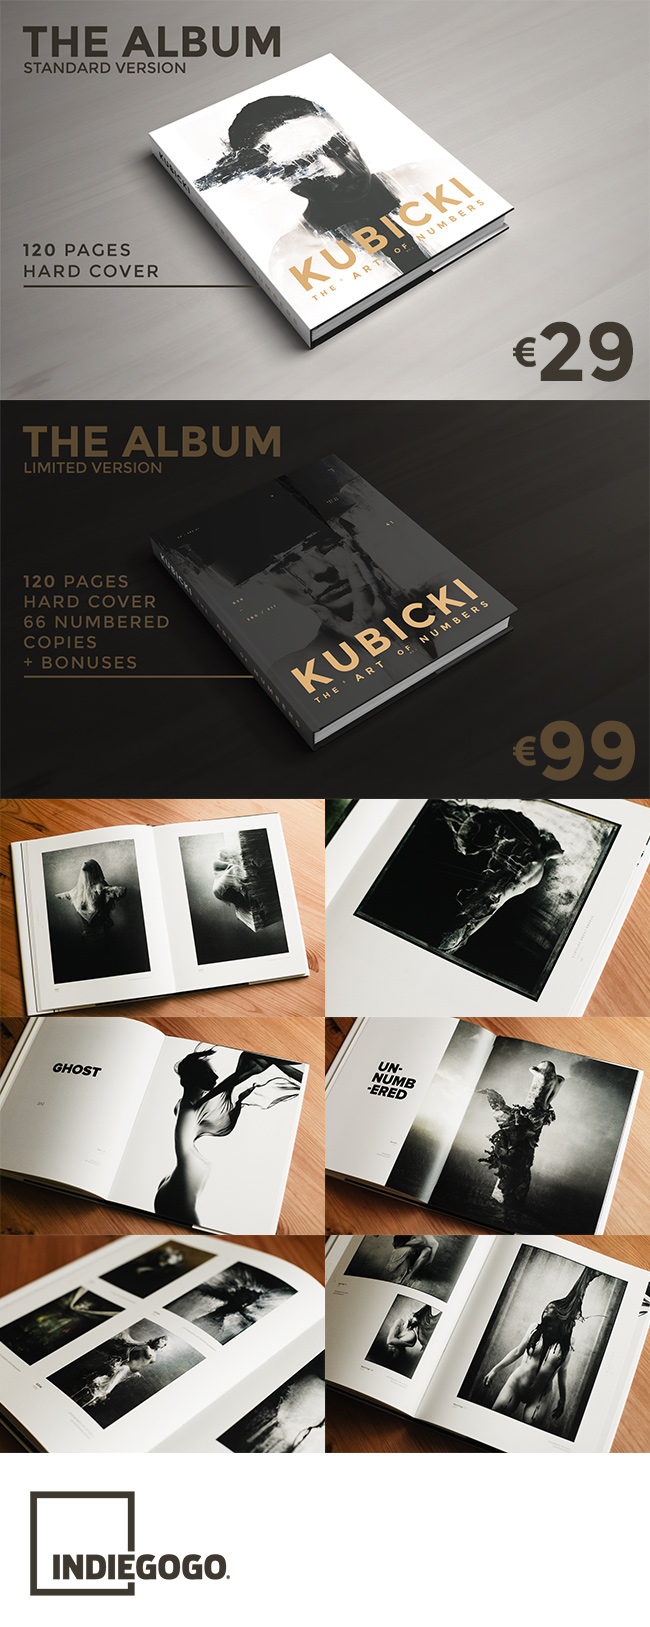 Album-tumblr-promo by kubicki